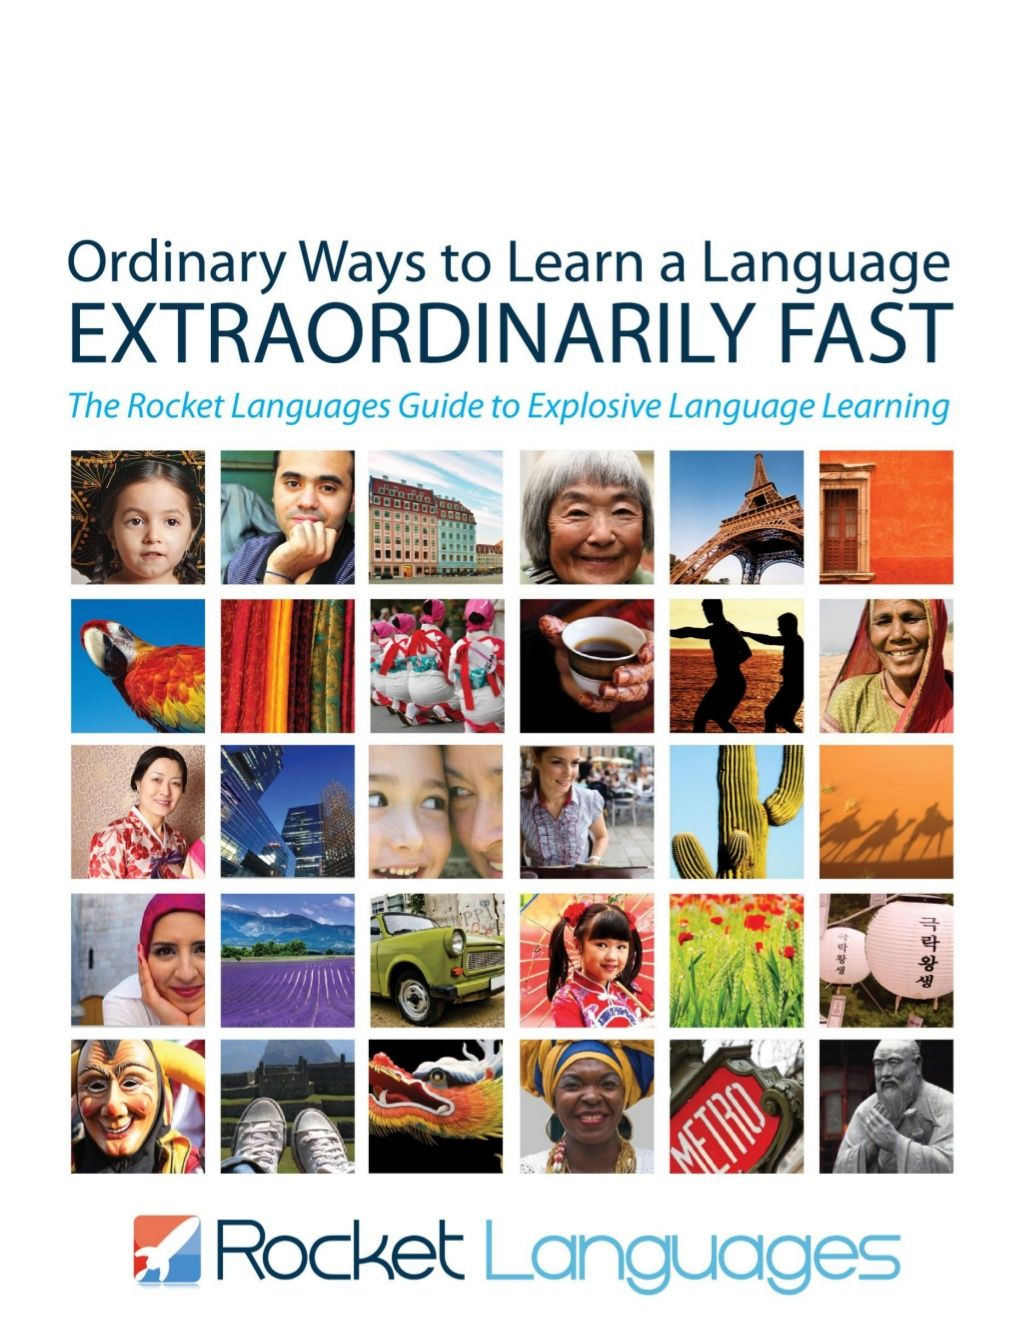 learn-chinesefast by minisites via Slideshare